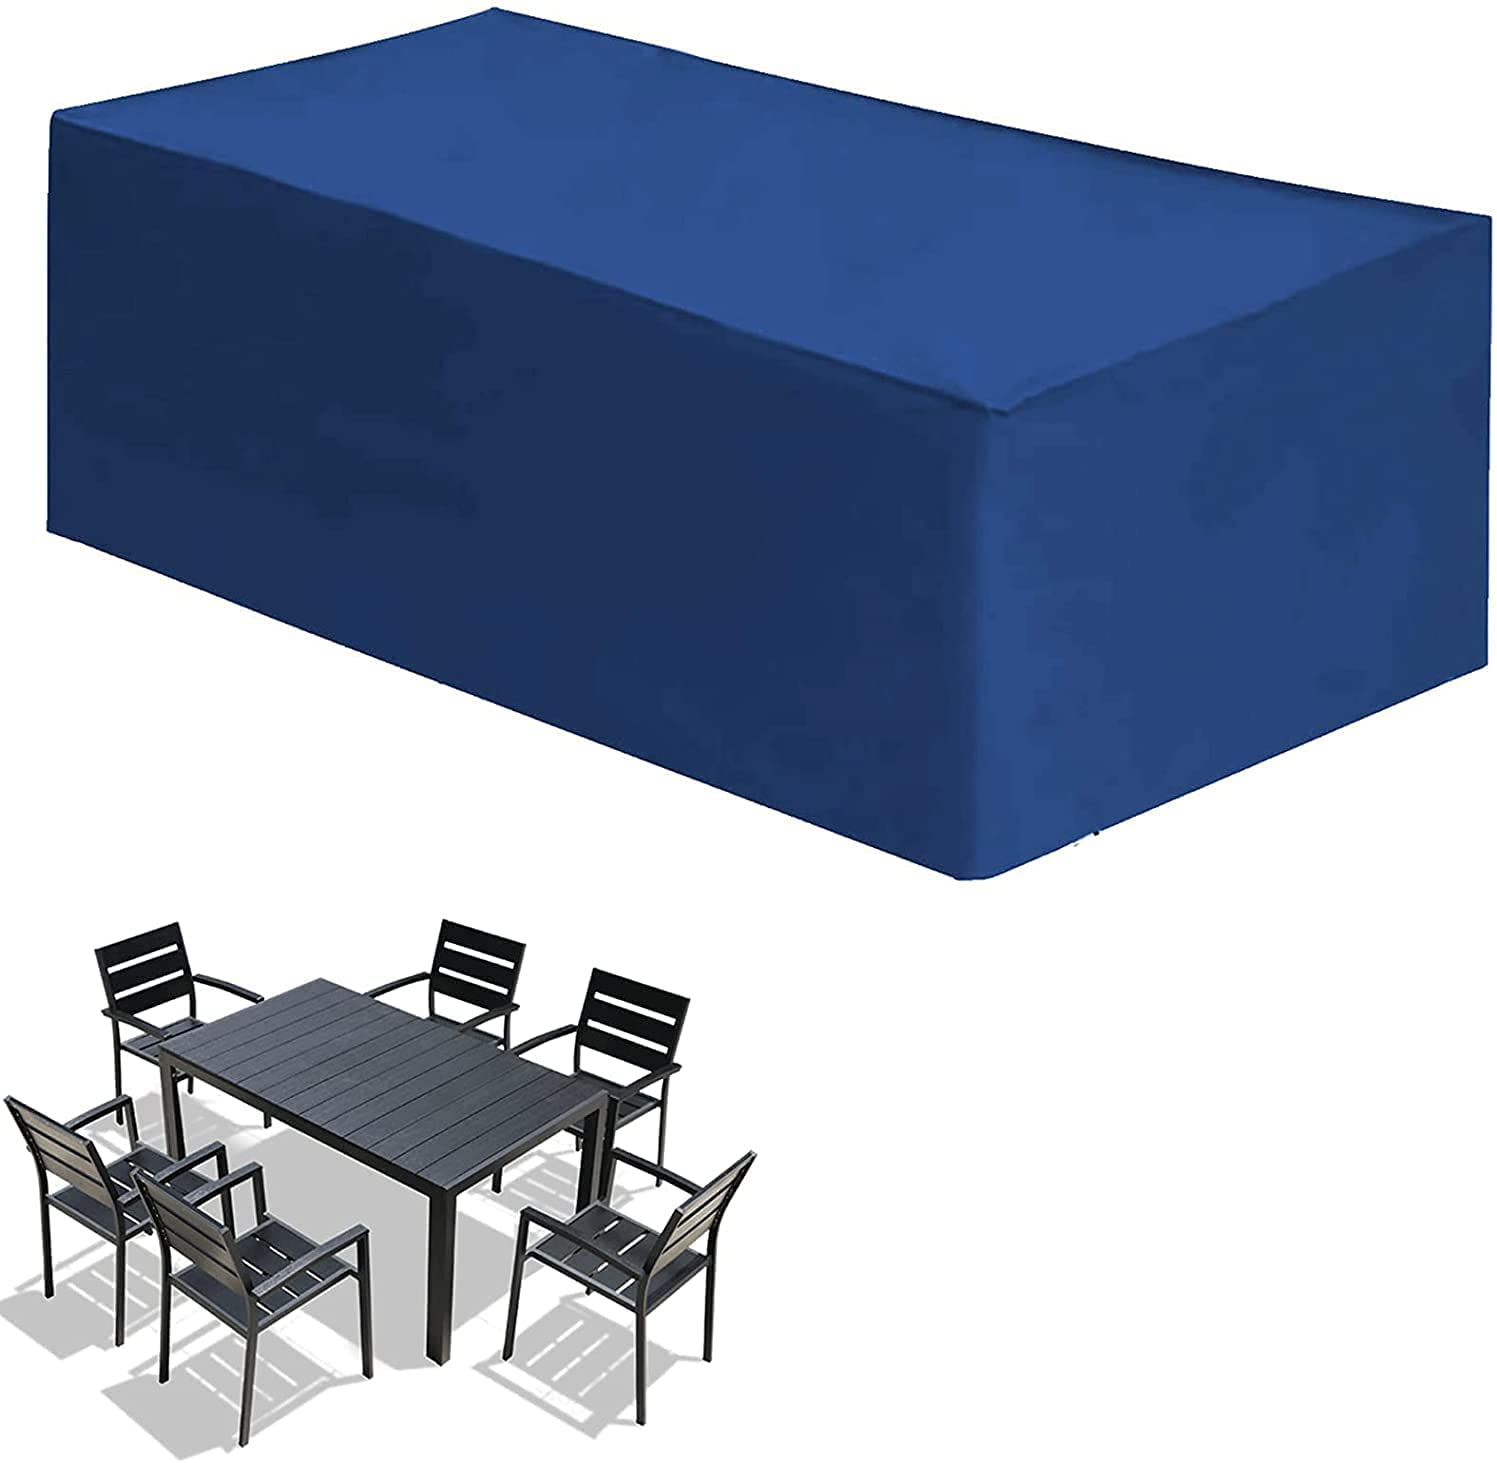 Popular products Garden Furniture Covers Outdoor Cover Direct stock discount Set Waterproof